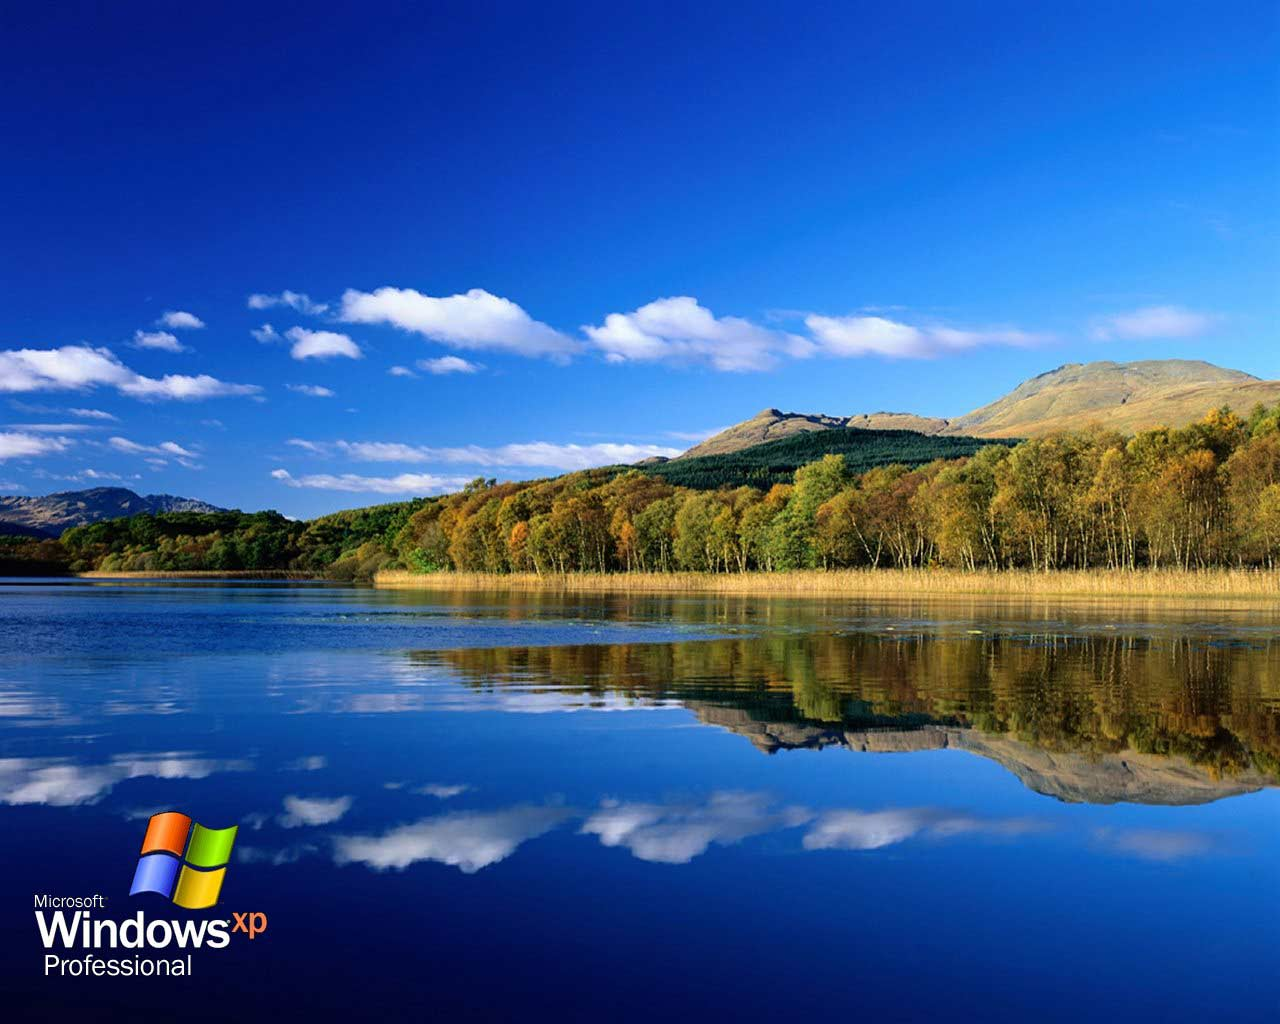 Windows Xp Wallpapers Hd Wallpaper Cave